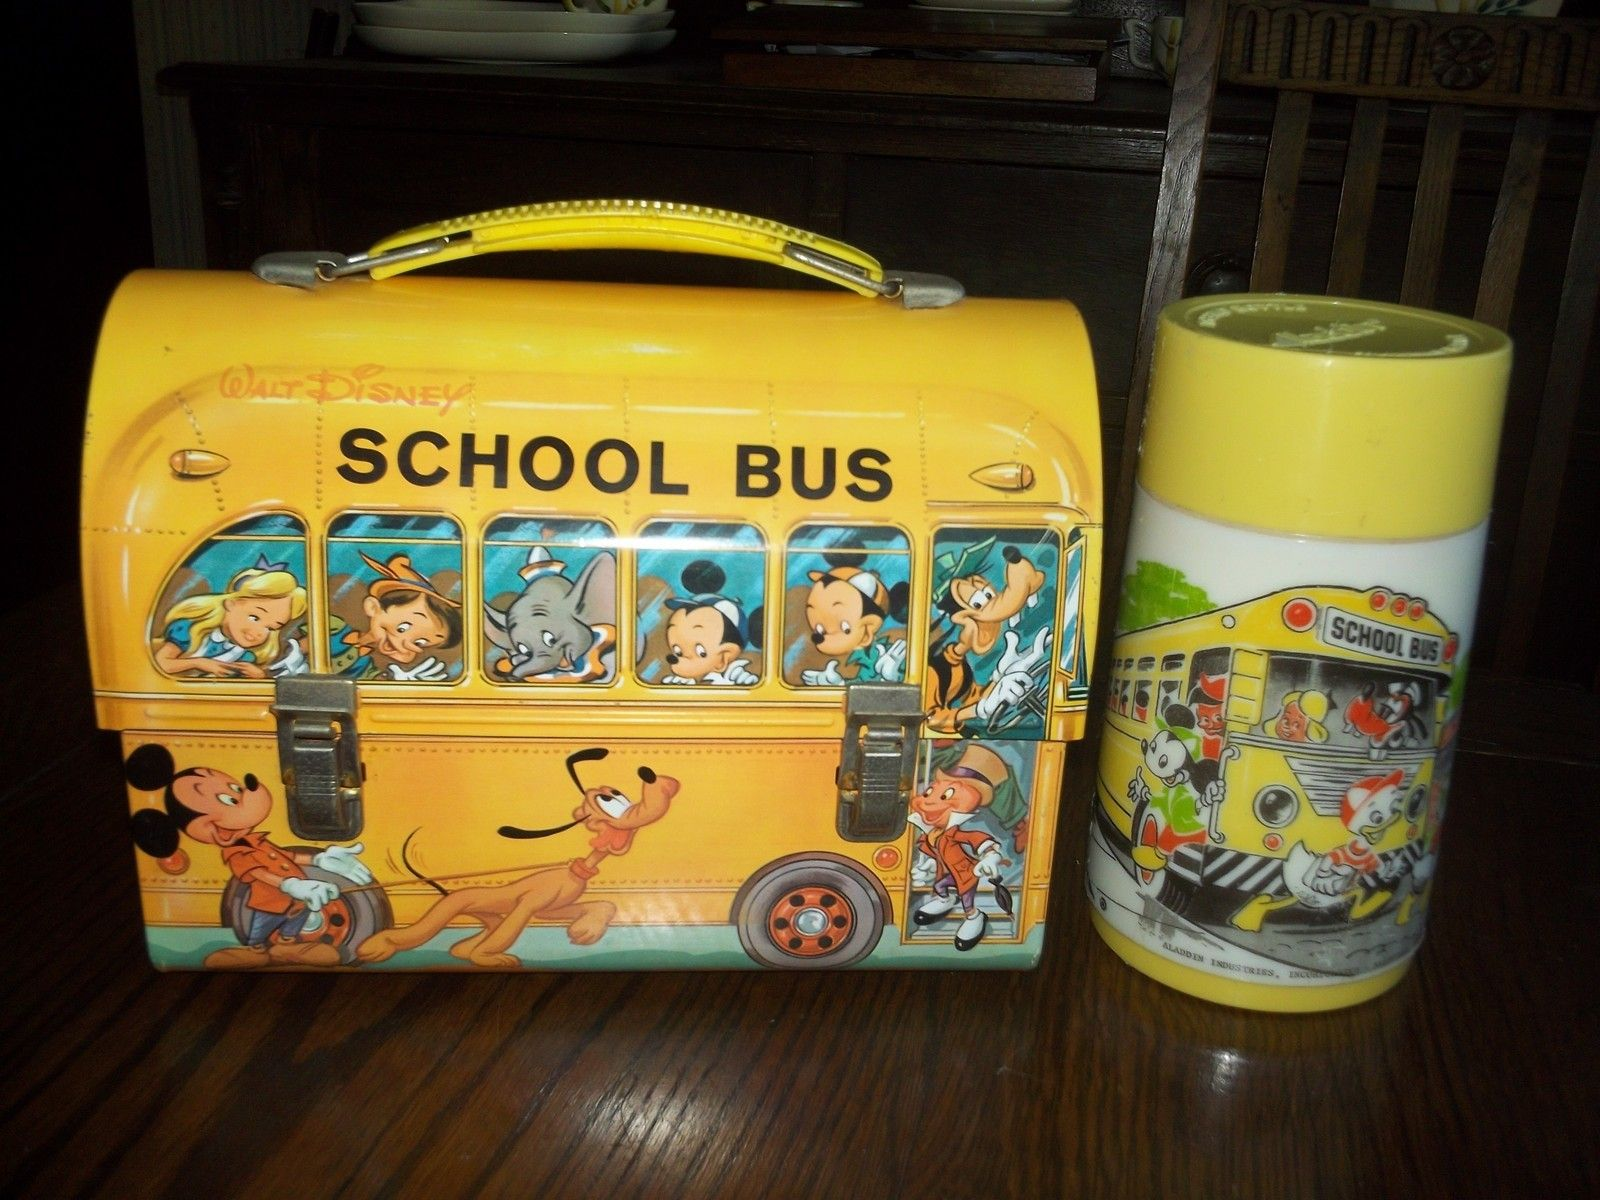 Disney School Bus Dome Lunch Box Thermos Vintage Classic